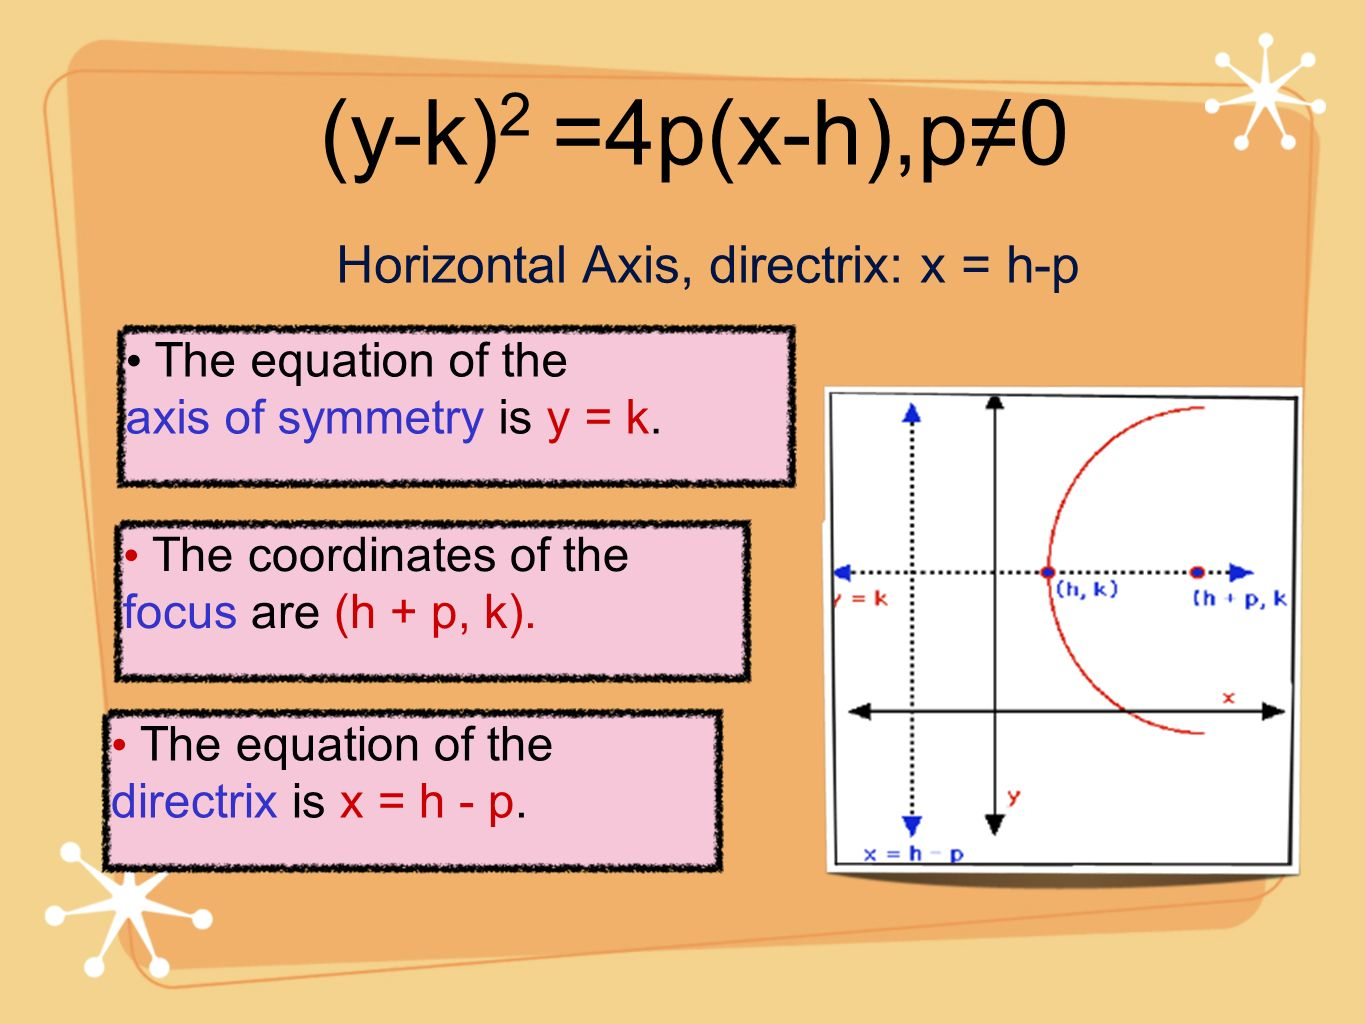 Horizontal Axis, directrix: x = h-p